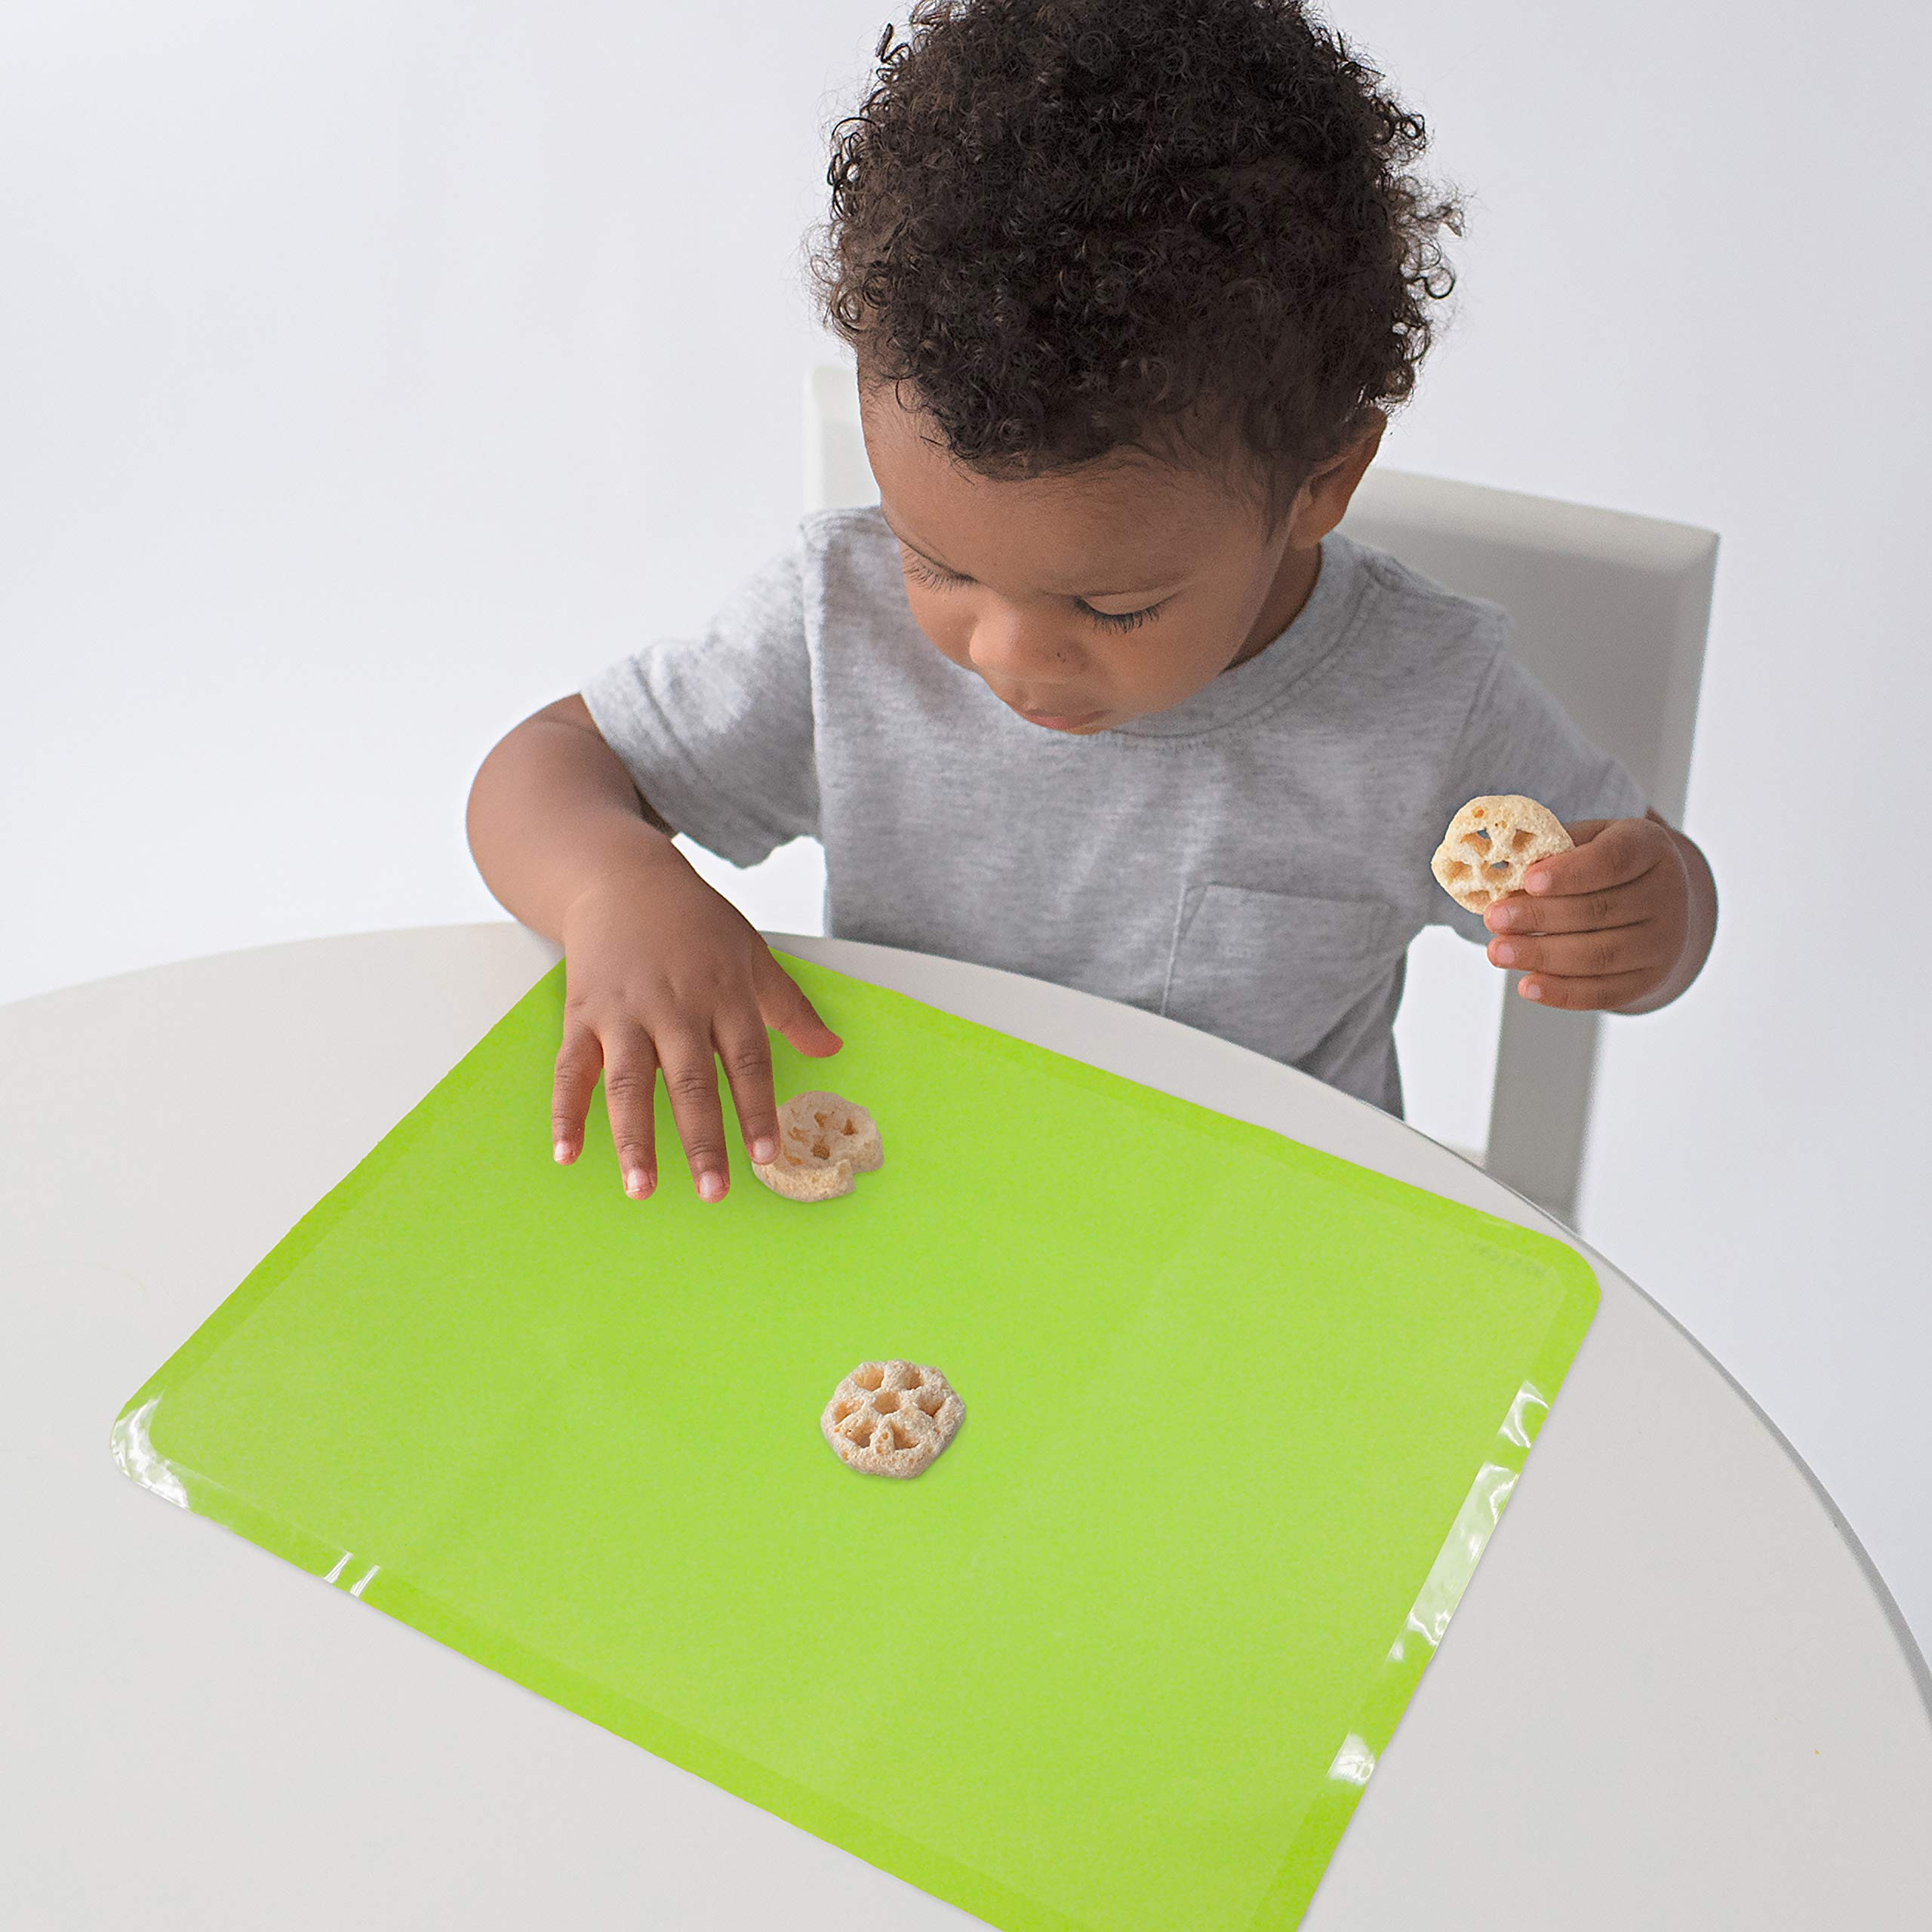 Neat Solutions Reusable Non-Slip Sili-Stick Table Topper, Food Grade Silicone Placemat - BPA Free - Dishwasher Safe - 15 x 11 inches - 6 Count (Green,Blue,Red) by Neat Solutions